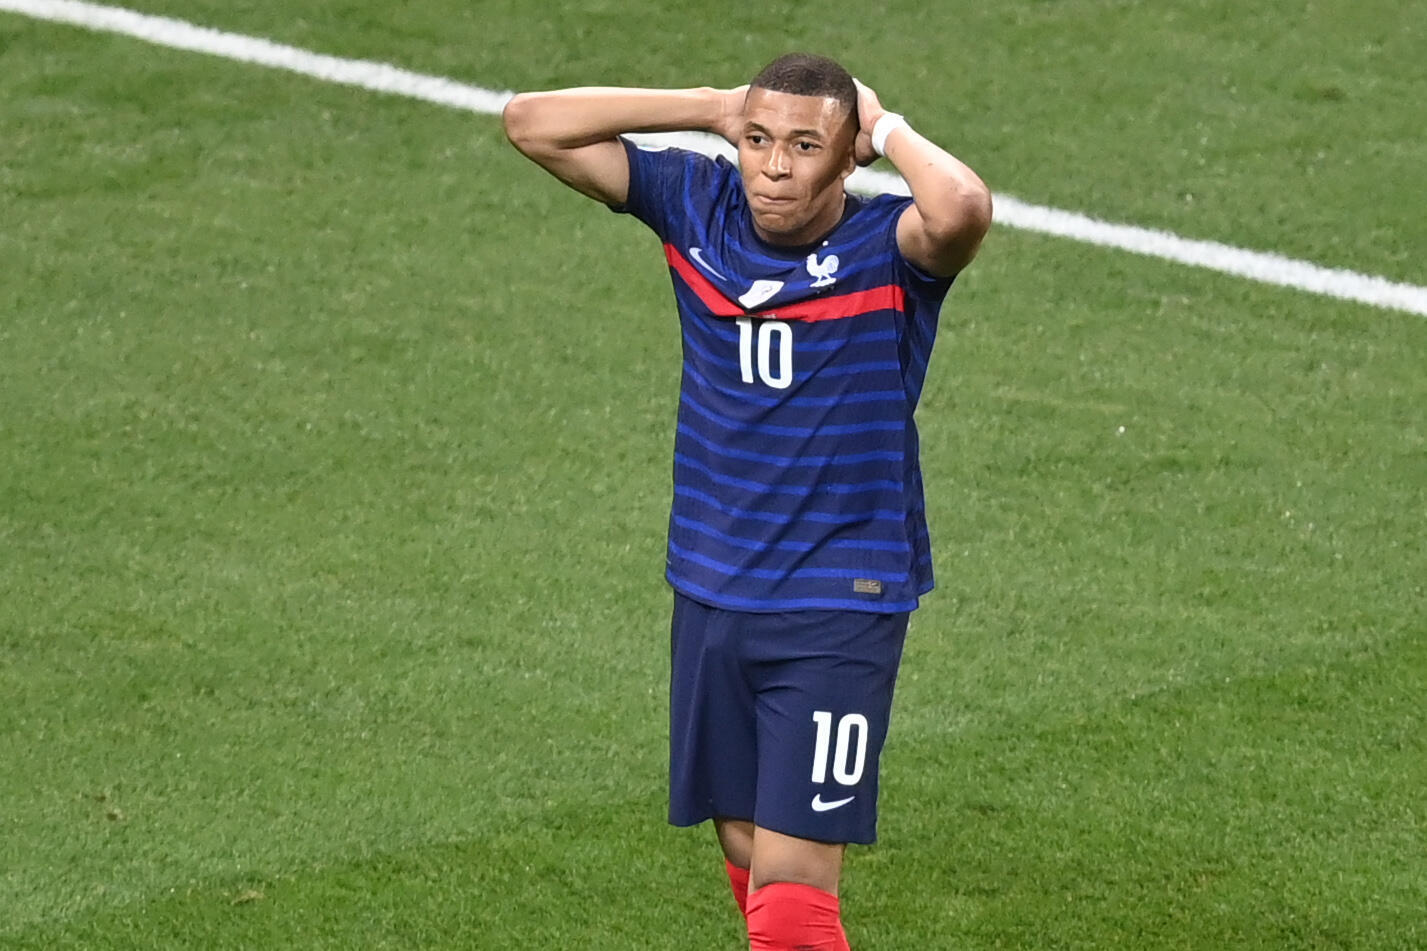 Penalty 'scar': Kylian Mbappe missed the decisive penalty as France exited Euro 2020 to Switzerland